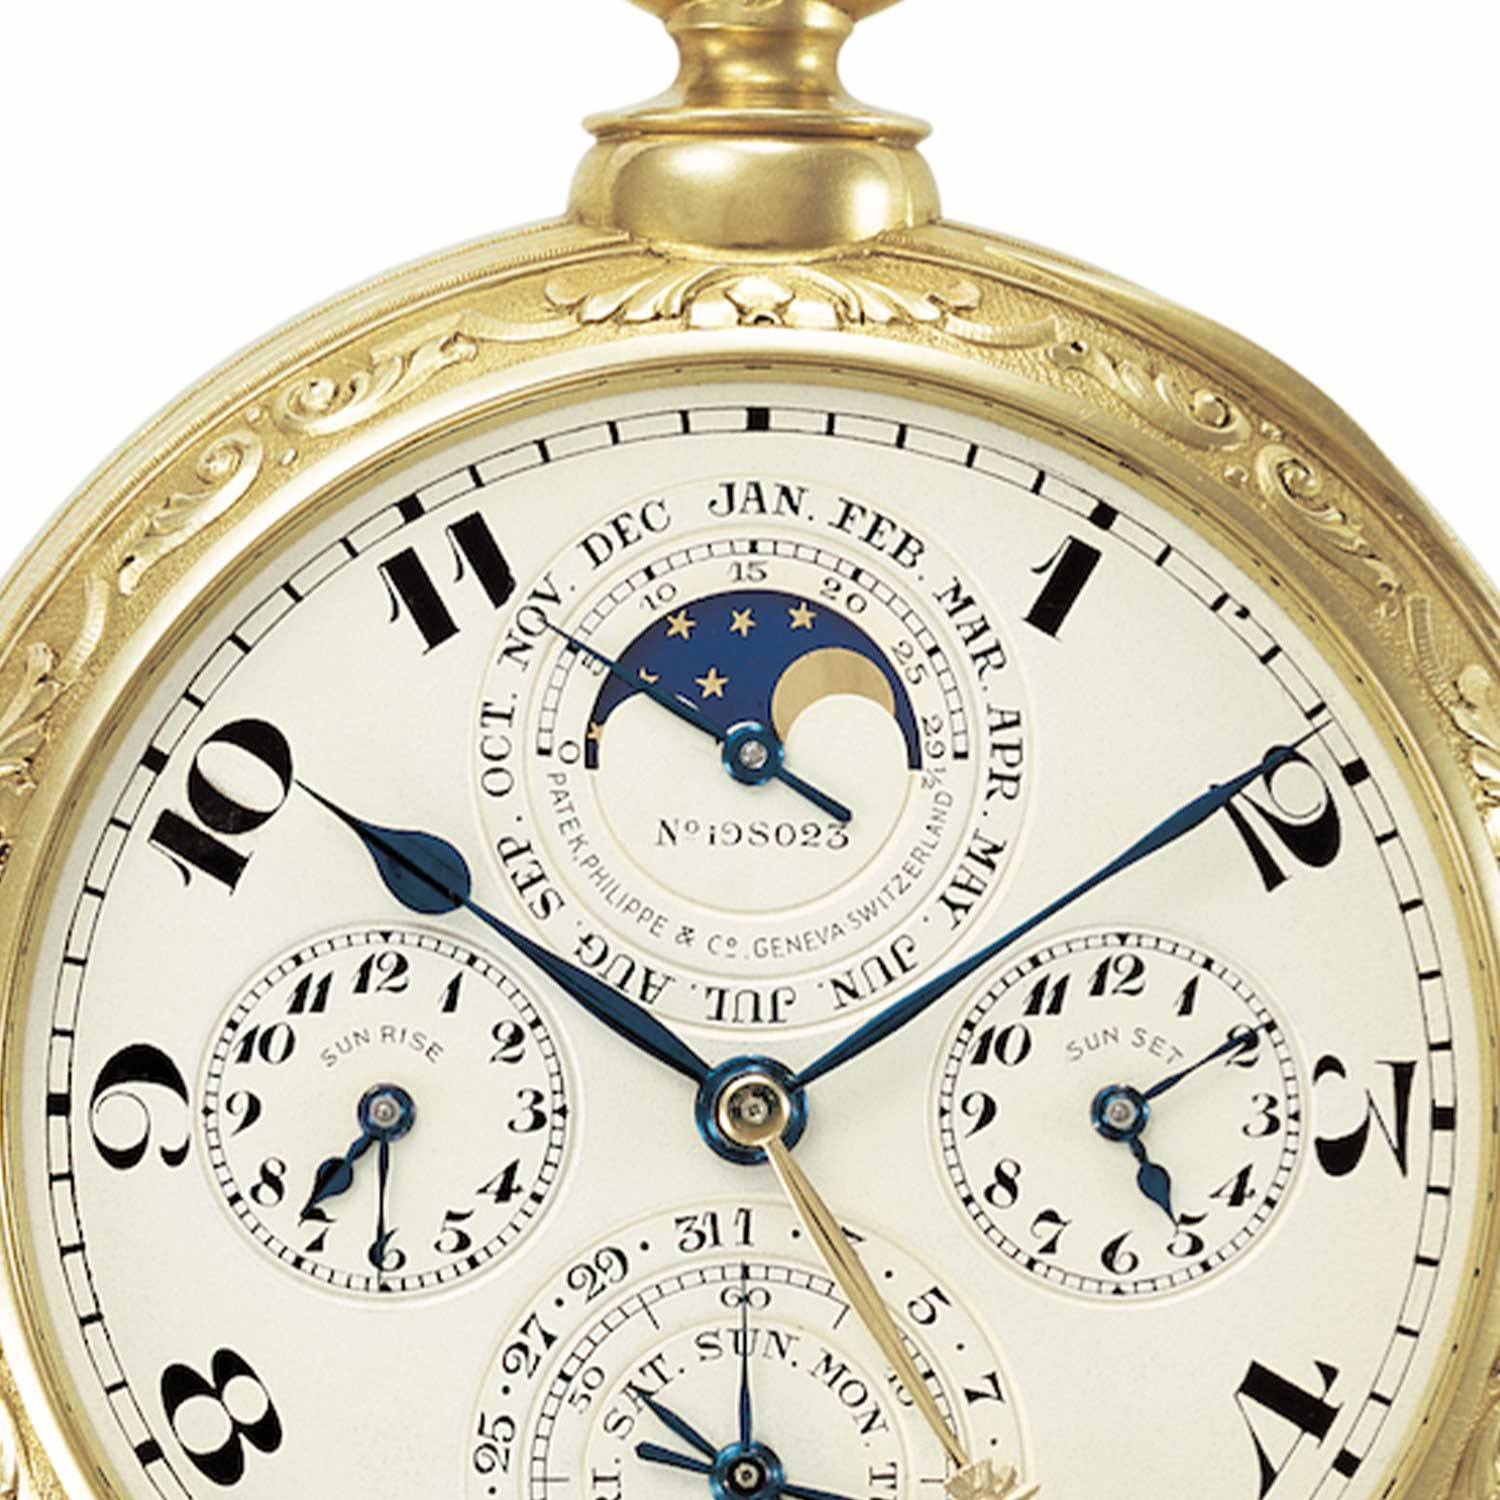 A closer look at the month counter and moon phase display on the Patek Philippe pocket watch made for James Ward